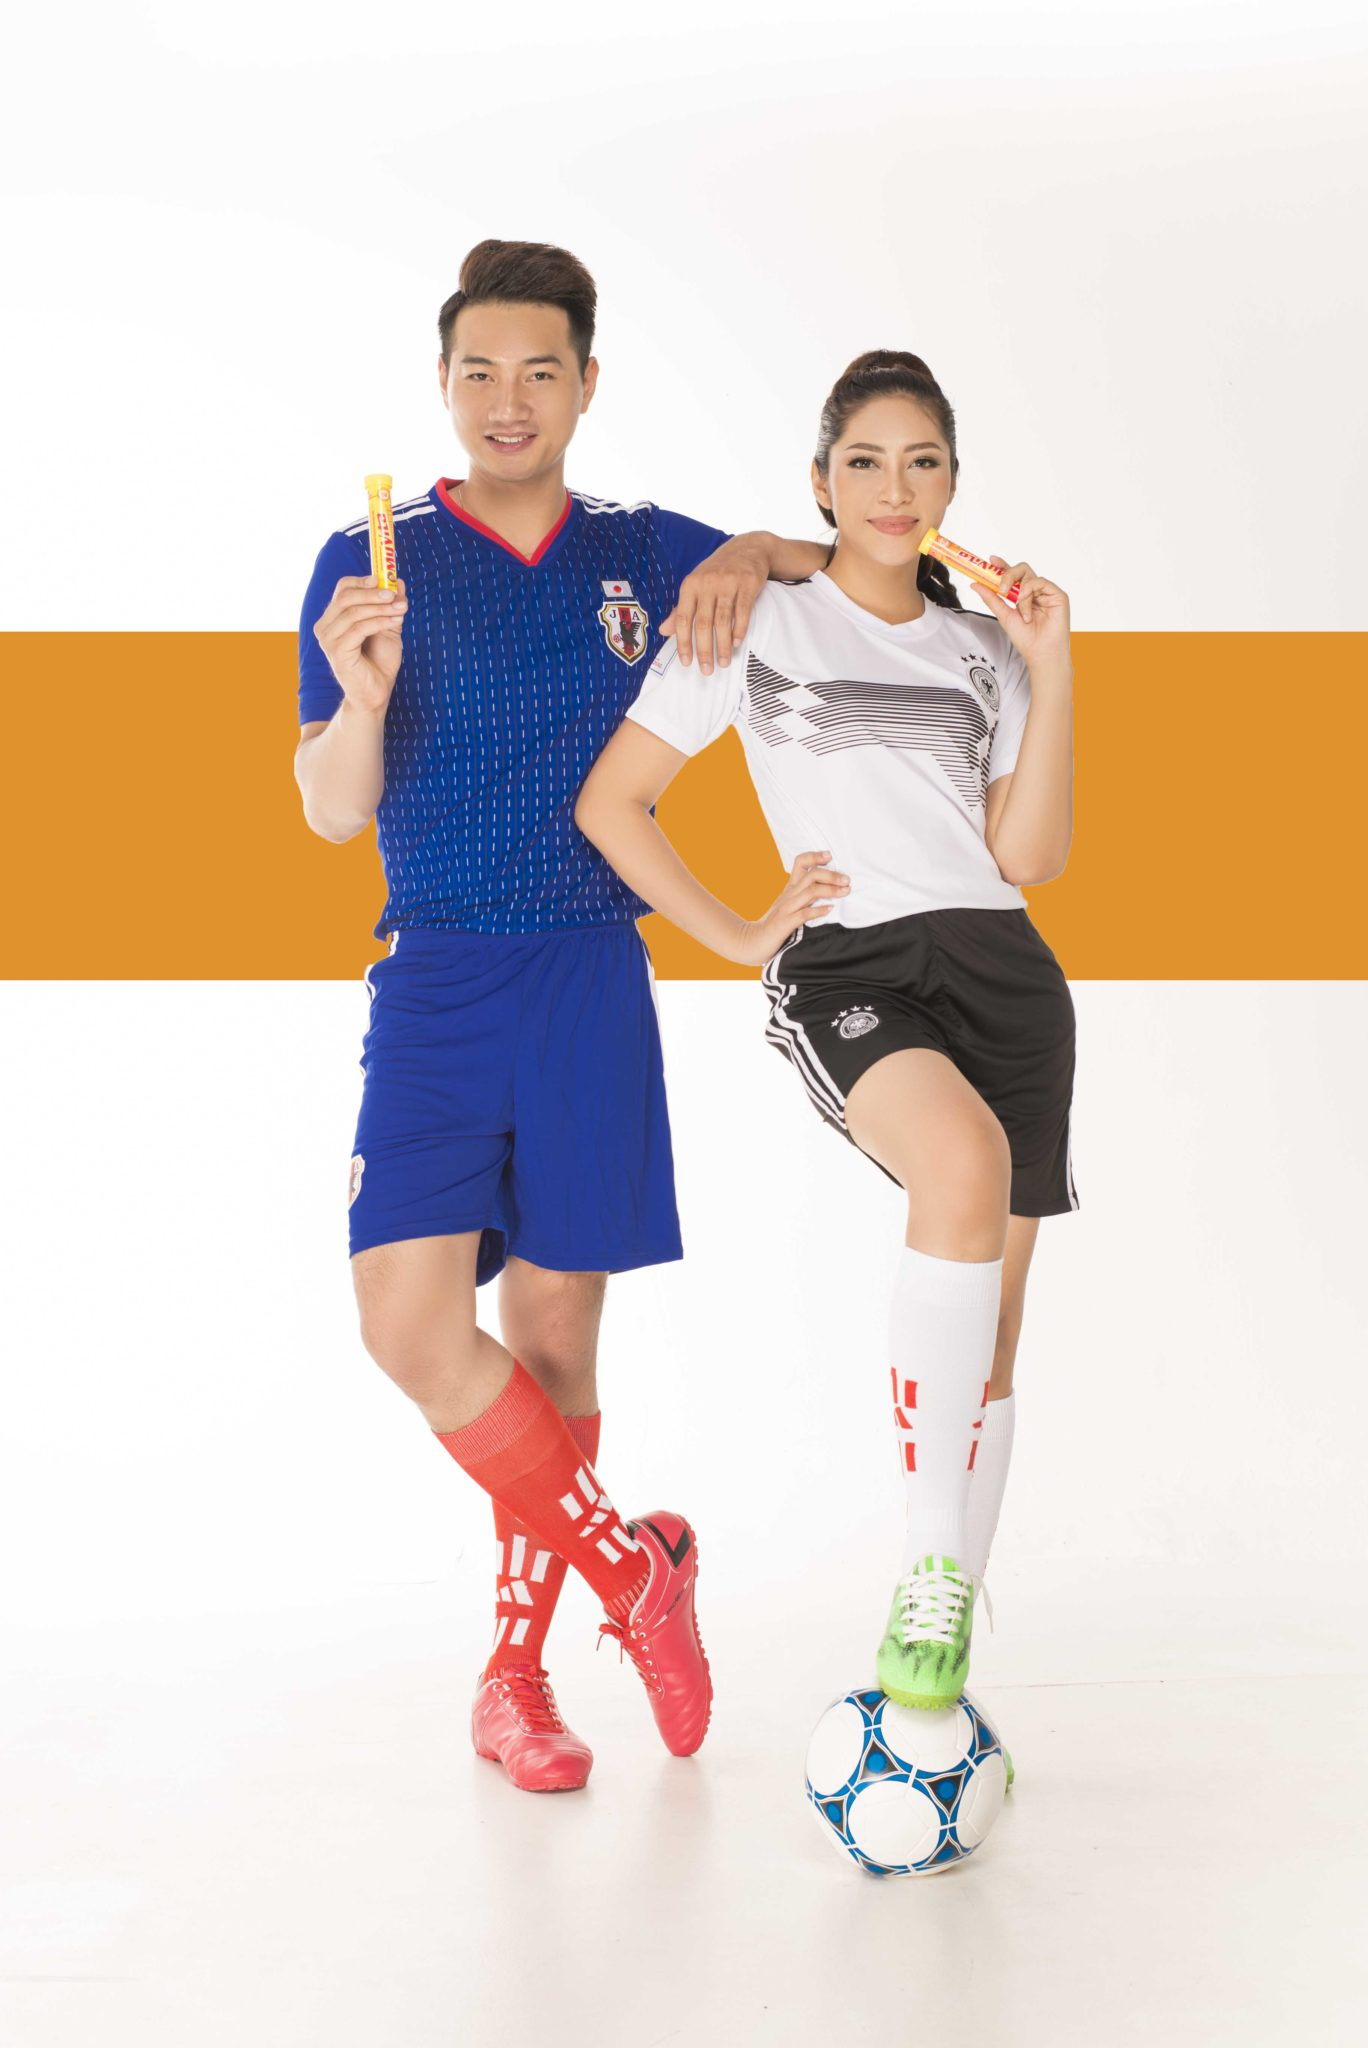 Dang-Thu-Thao-Duy-Linh-WorldCup-MyVita-H